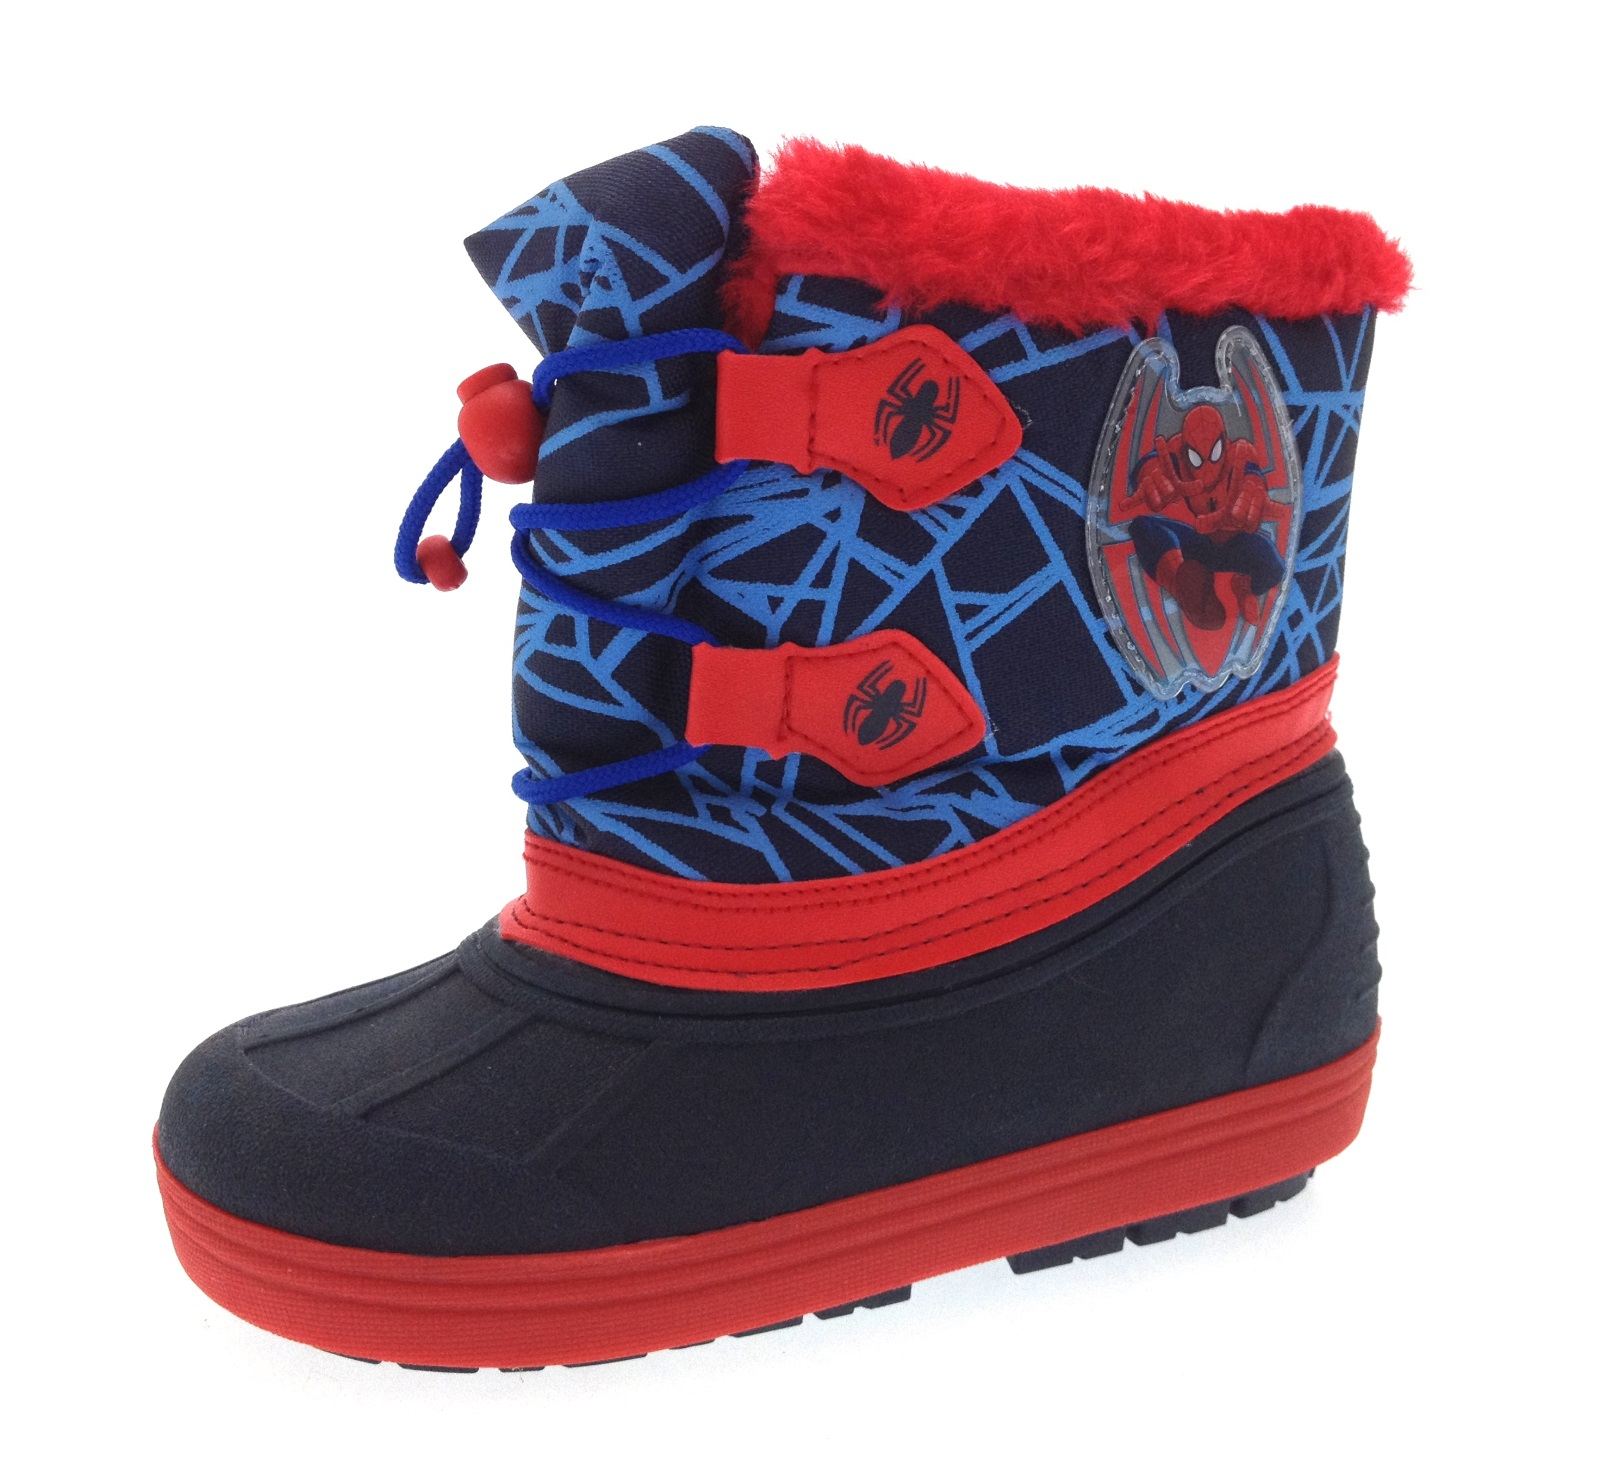 Girl Snow Boots Size 5 | Homewood Mountain Ski Resort